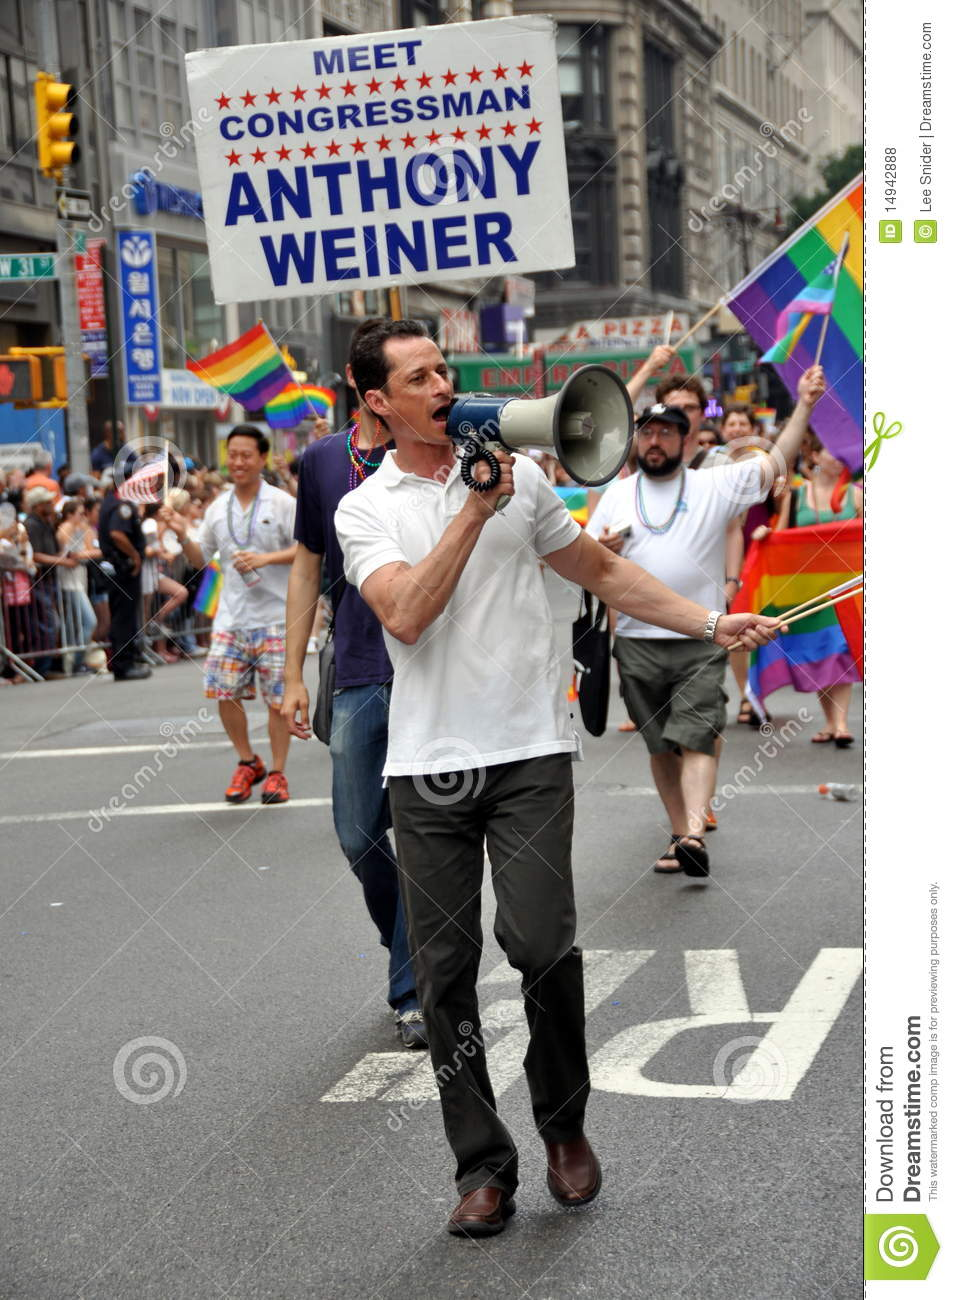 from Kingston gay pride nyc june 2010